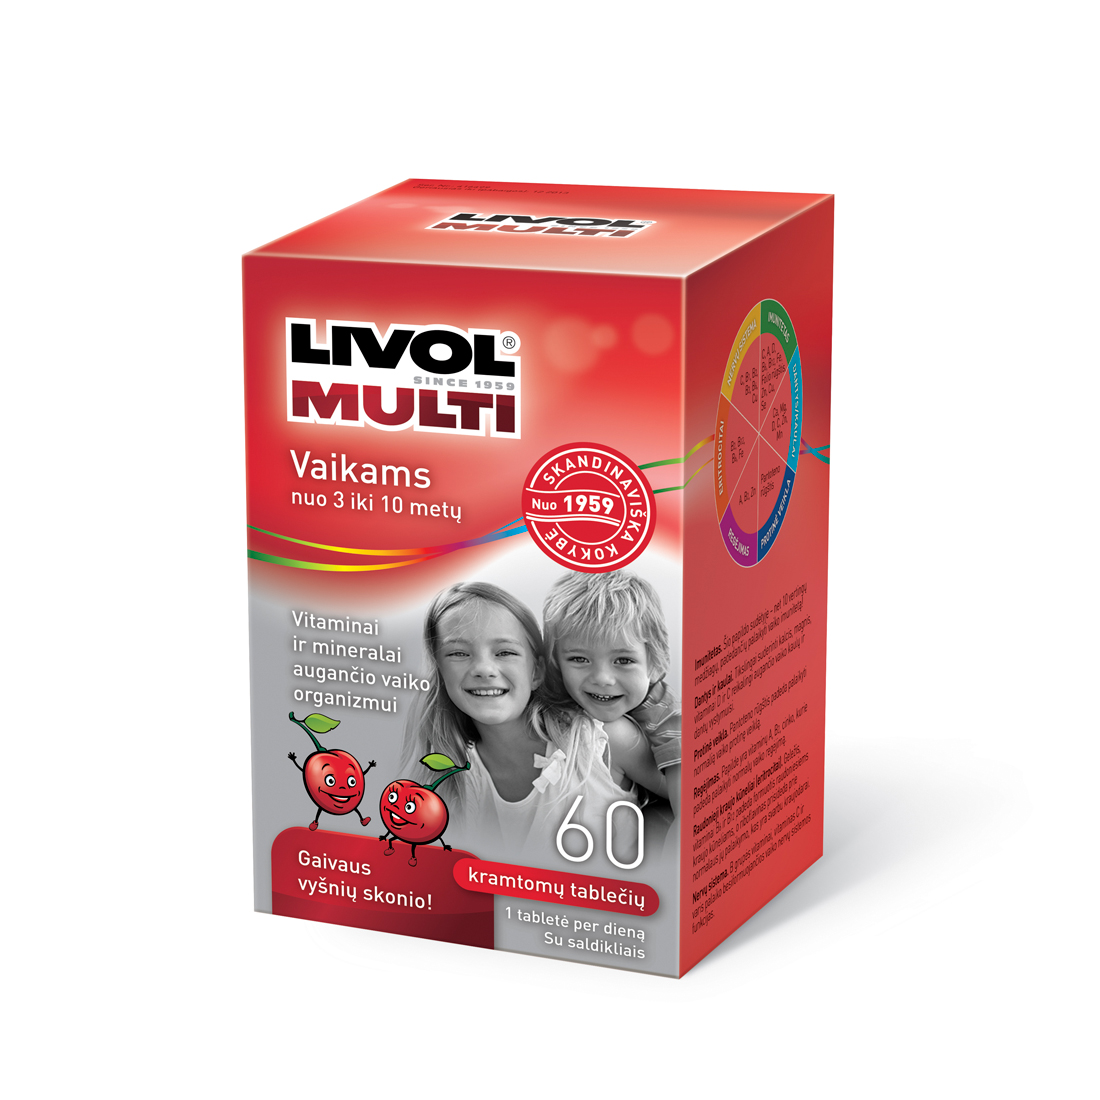 Livol-Multi-Kids-Cherry.jpg